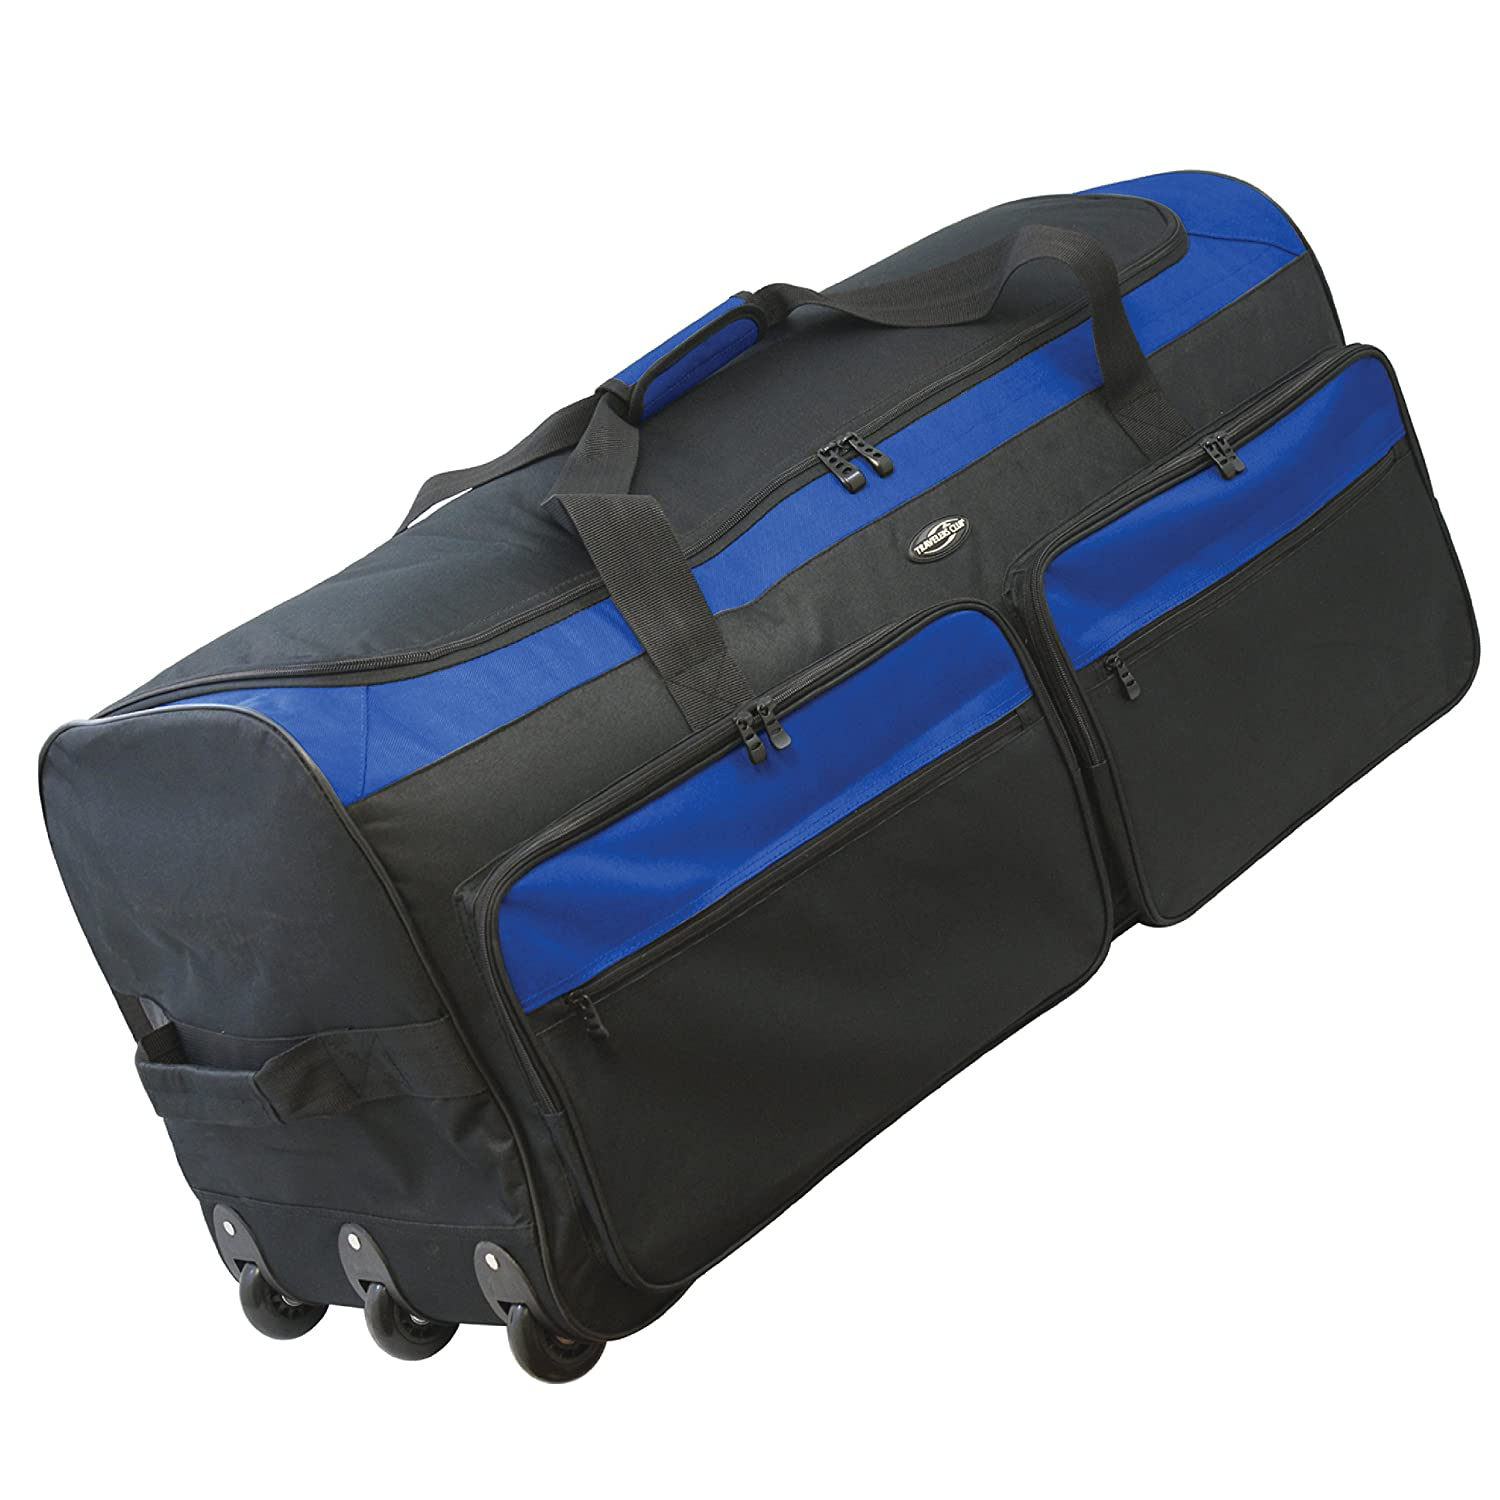 Travelers Club 36 X-Large Expandable Triple Wheeled Rolling Duffel Luggage Travelers Club Luggage 83036-001